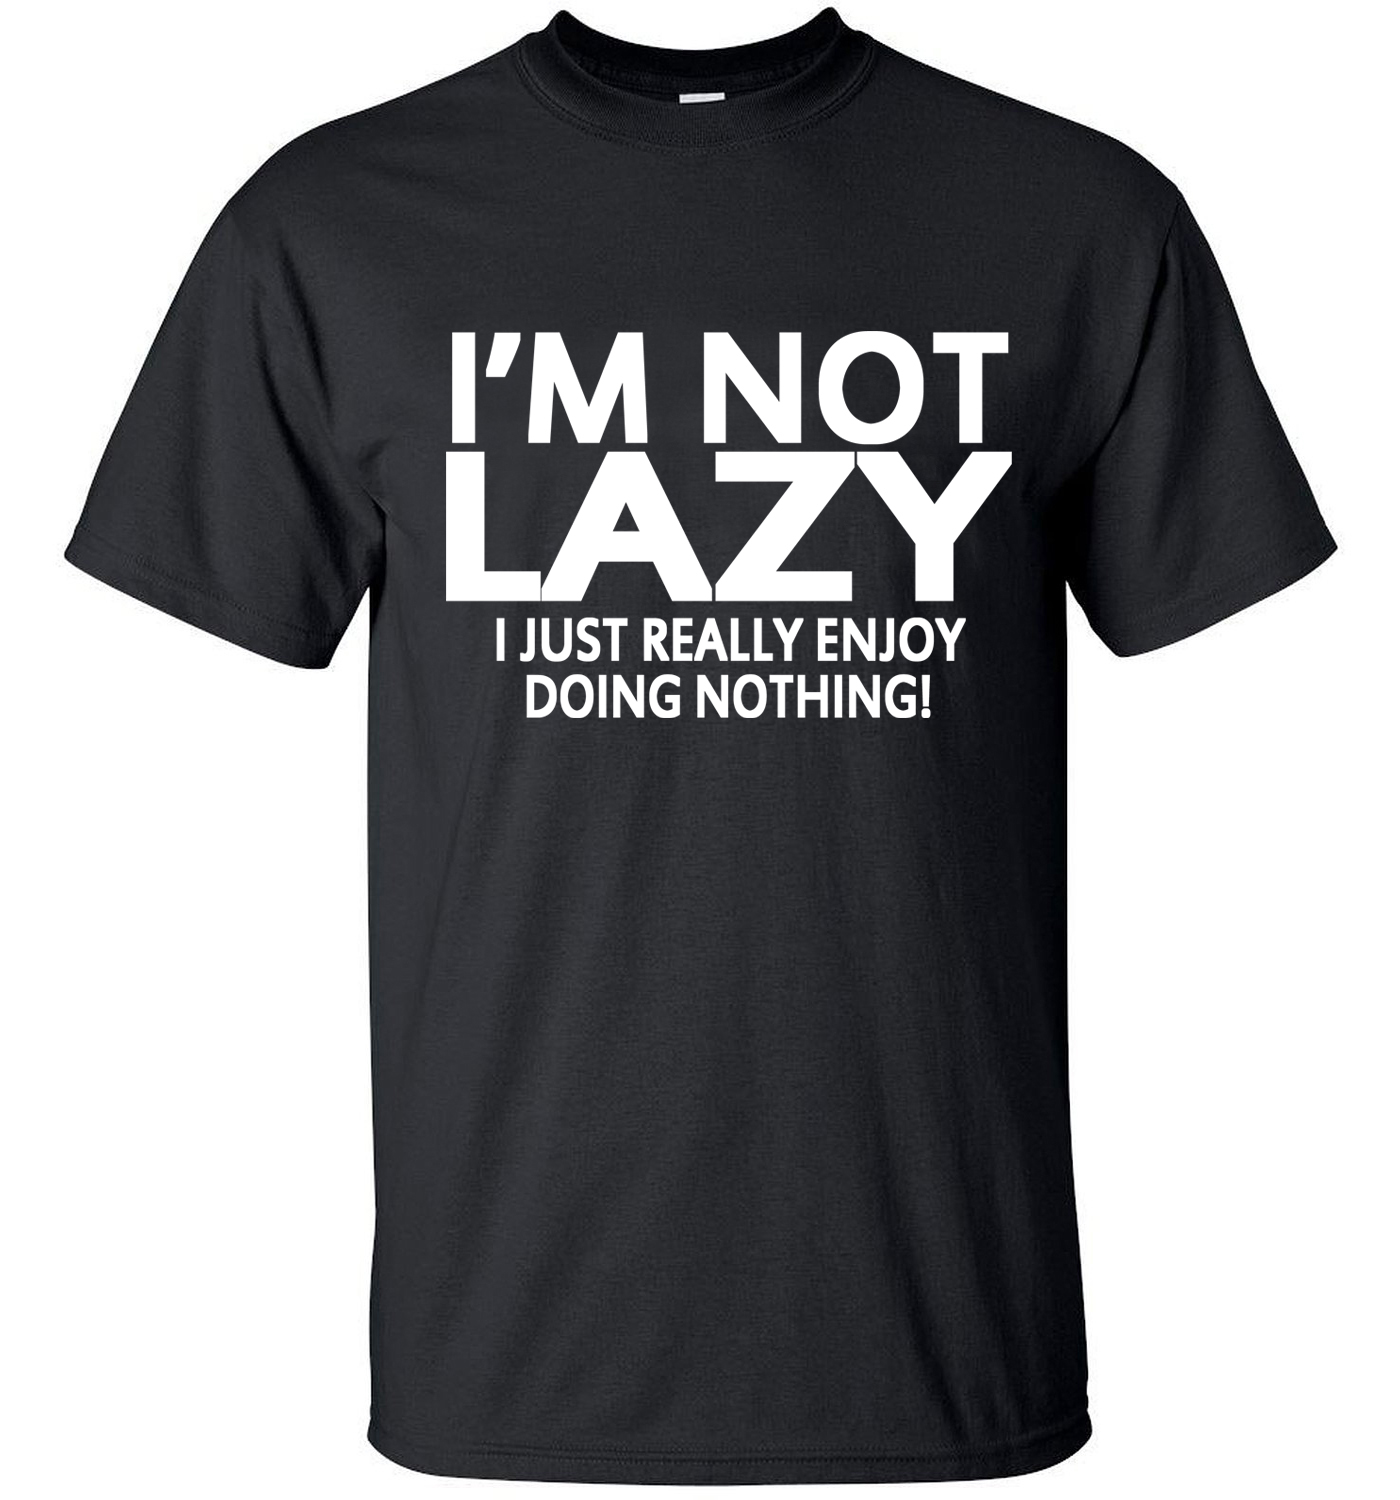 Men short sleeve T-Shirt 2017 i'm lazy just enjoy nothing streetwear hip hop funny t shirt crossfit Tops Tees homme